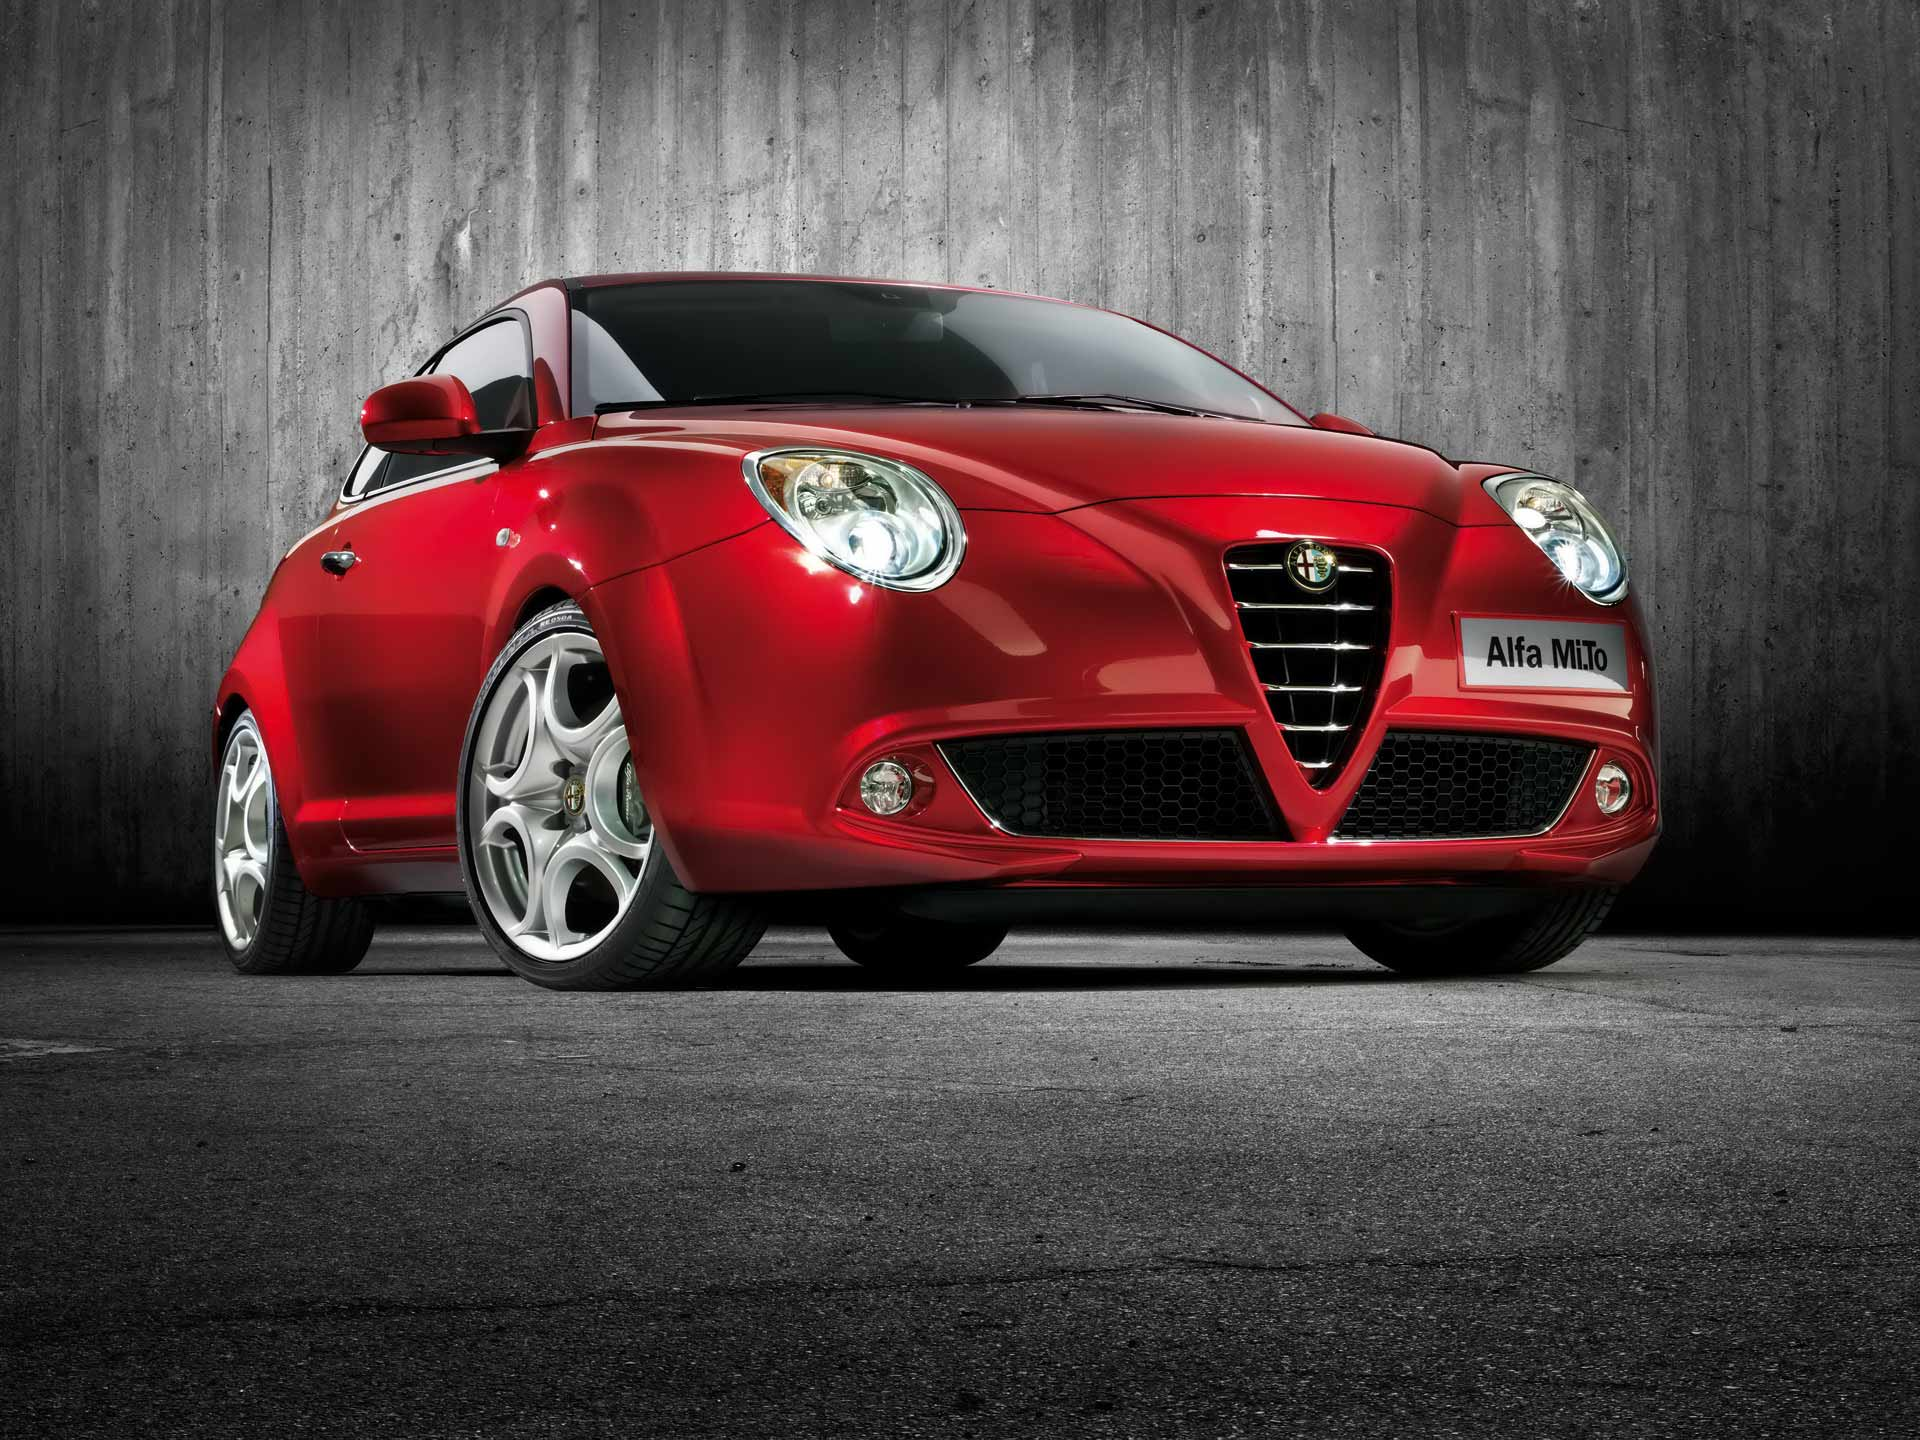 alfa romeo mito wallpaper red